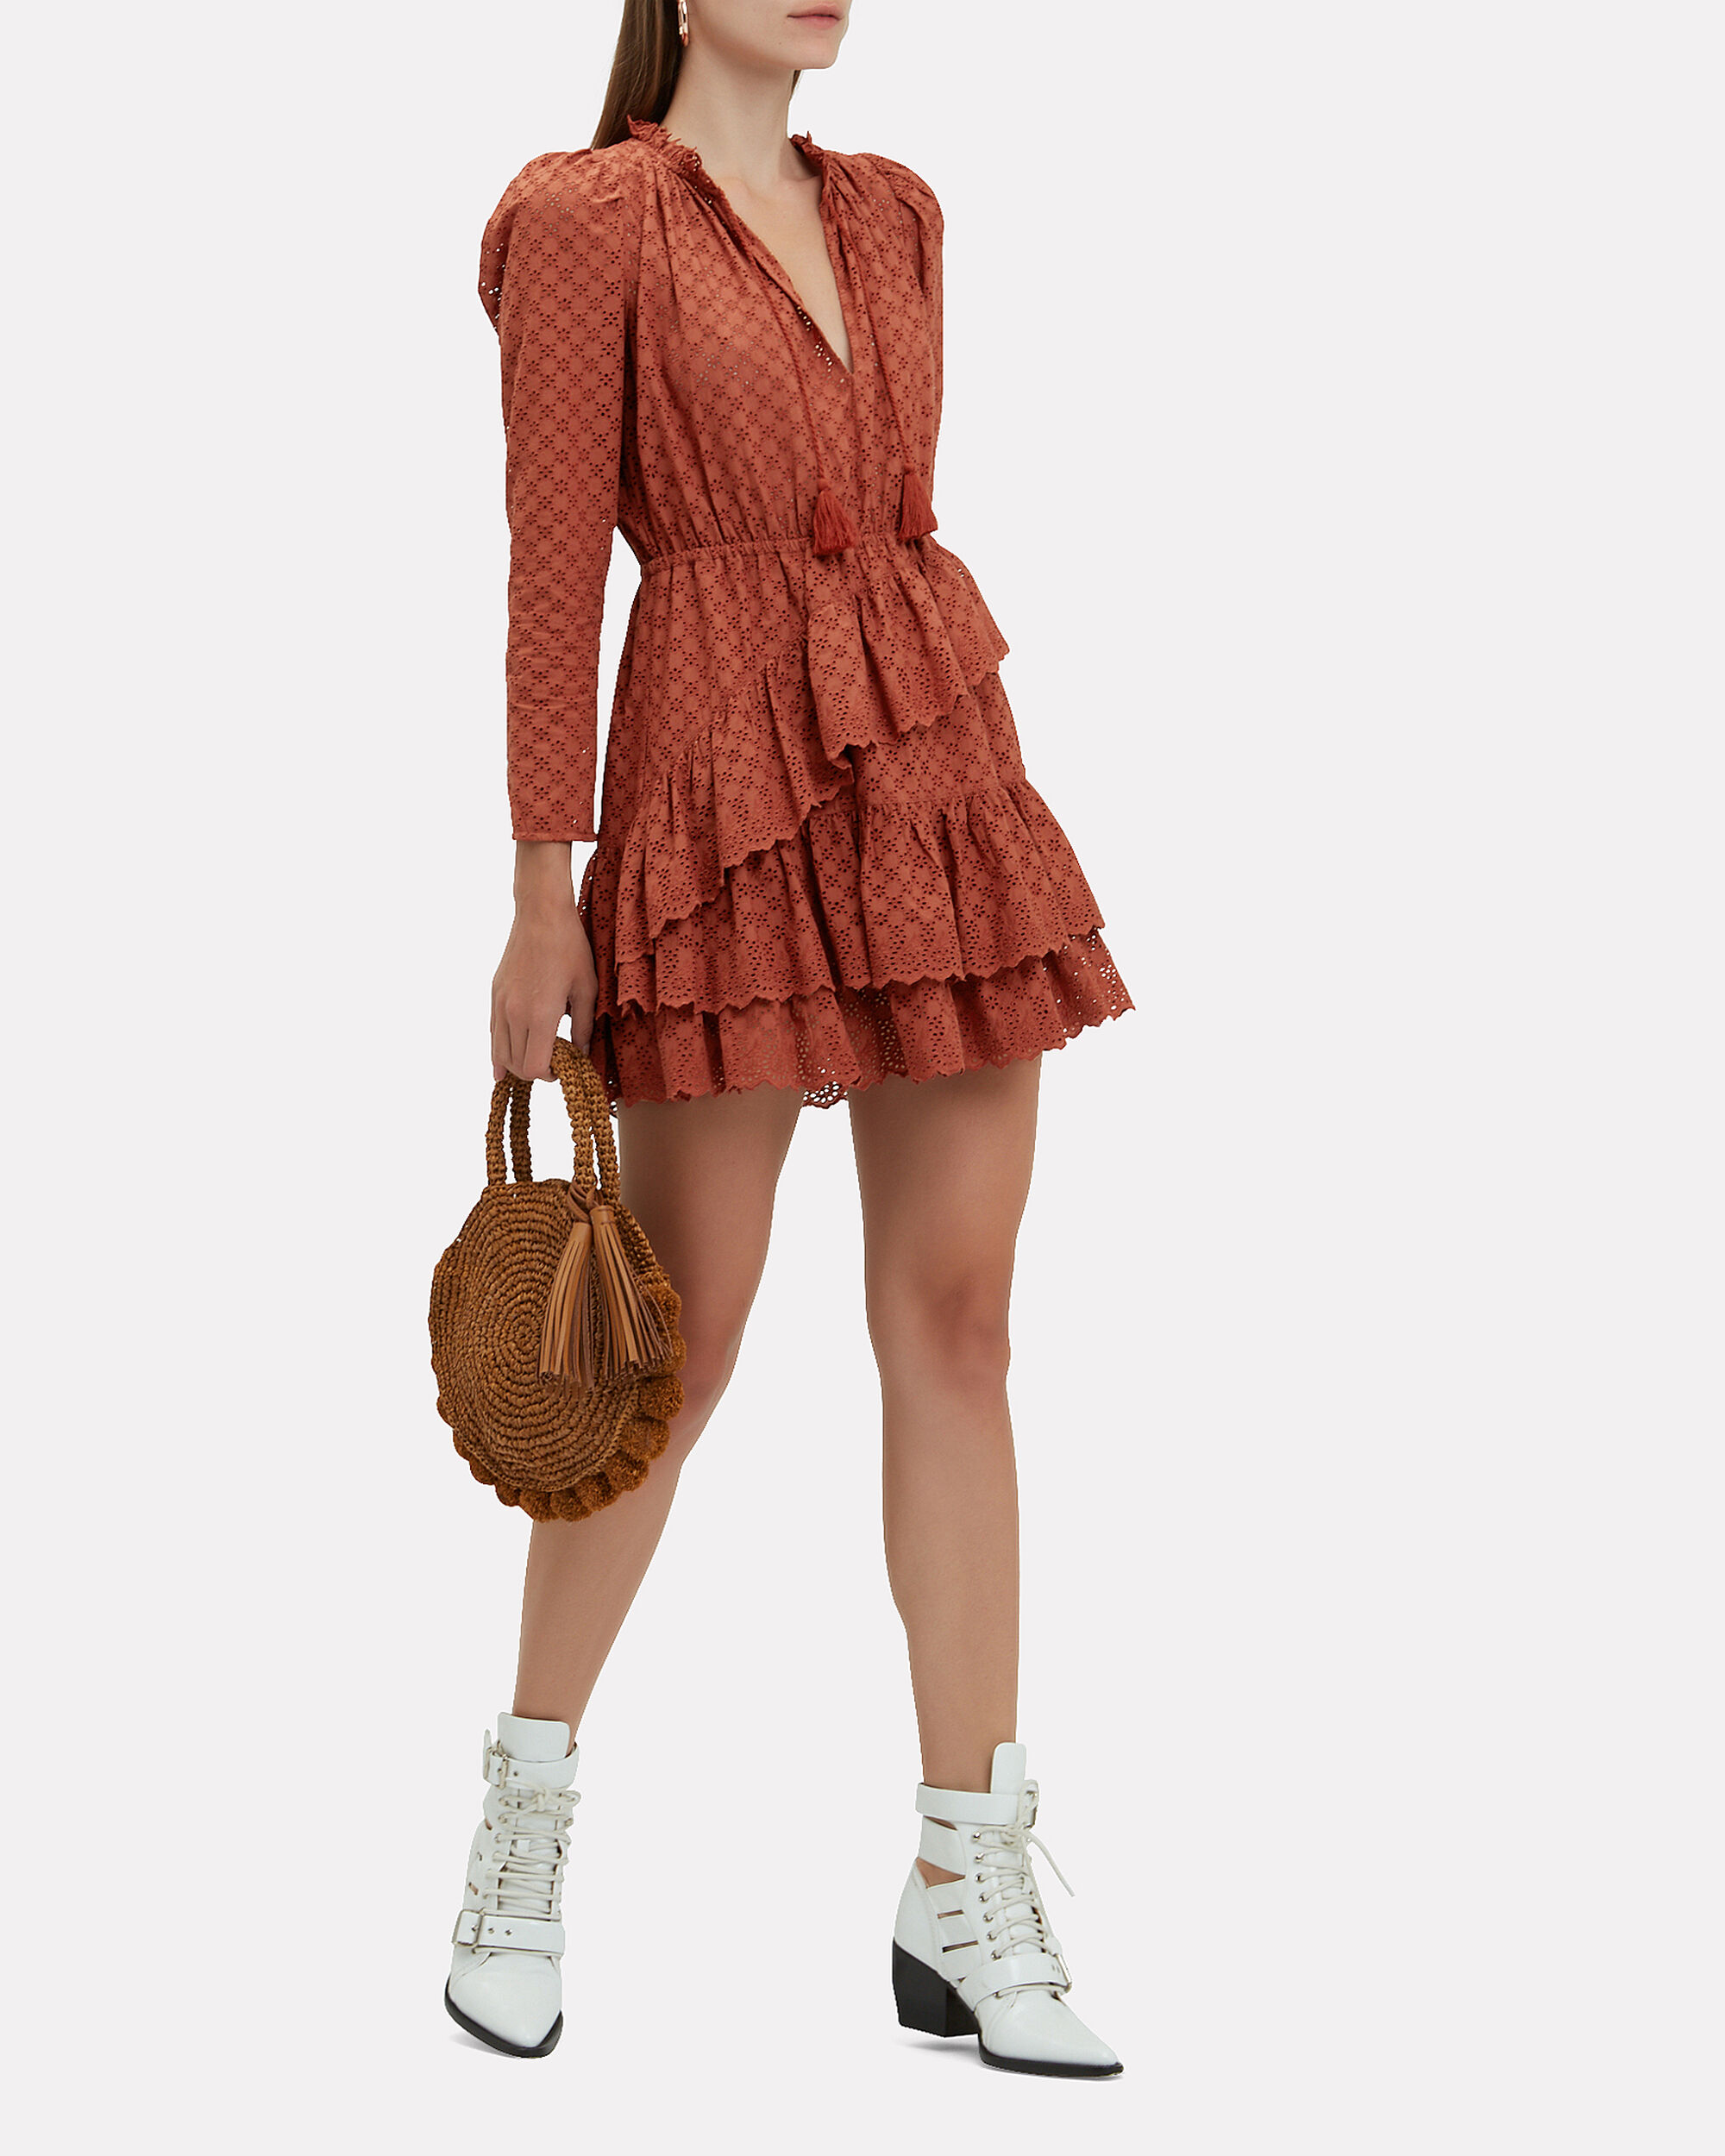 Josette Dress, BEIGE, hi-res